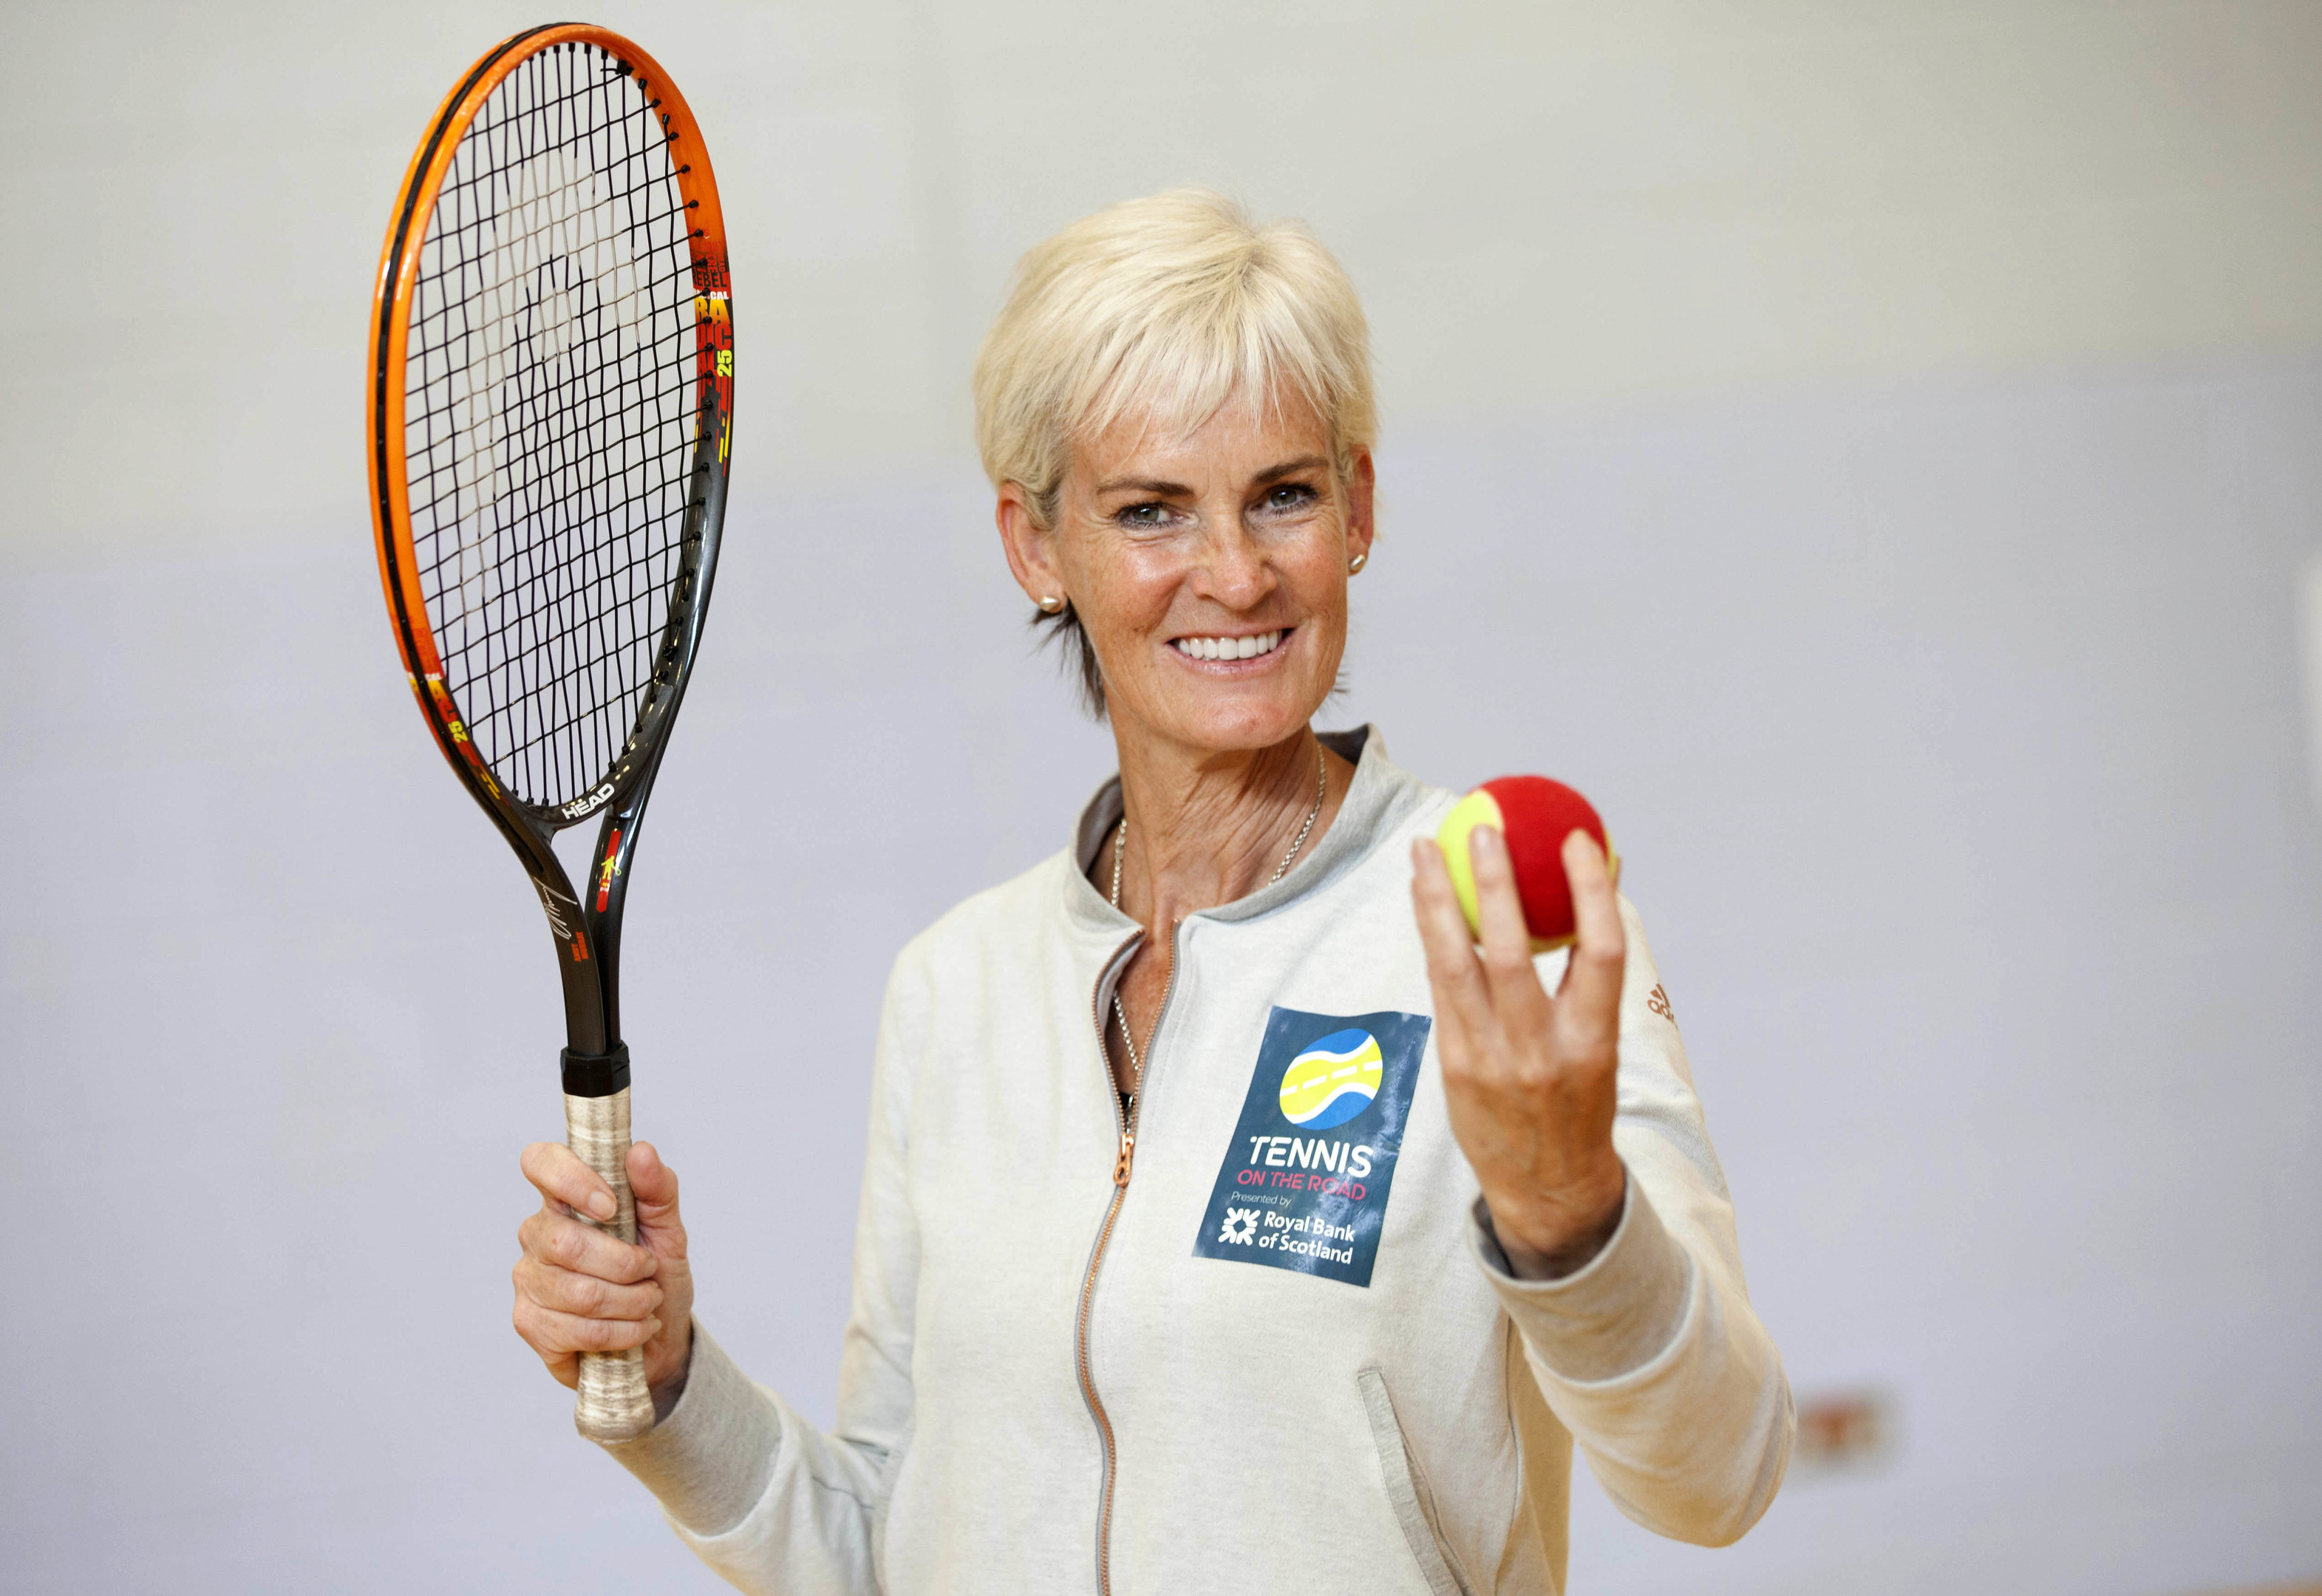 Judy Murray will be in Aberdeen for the Tennis on the Road tour.